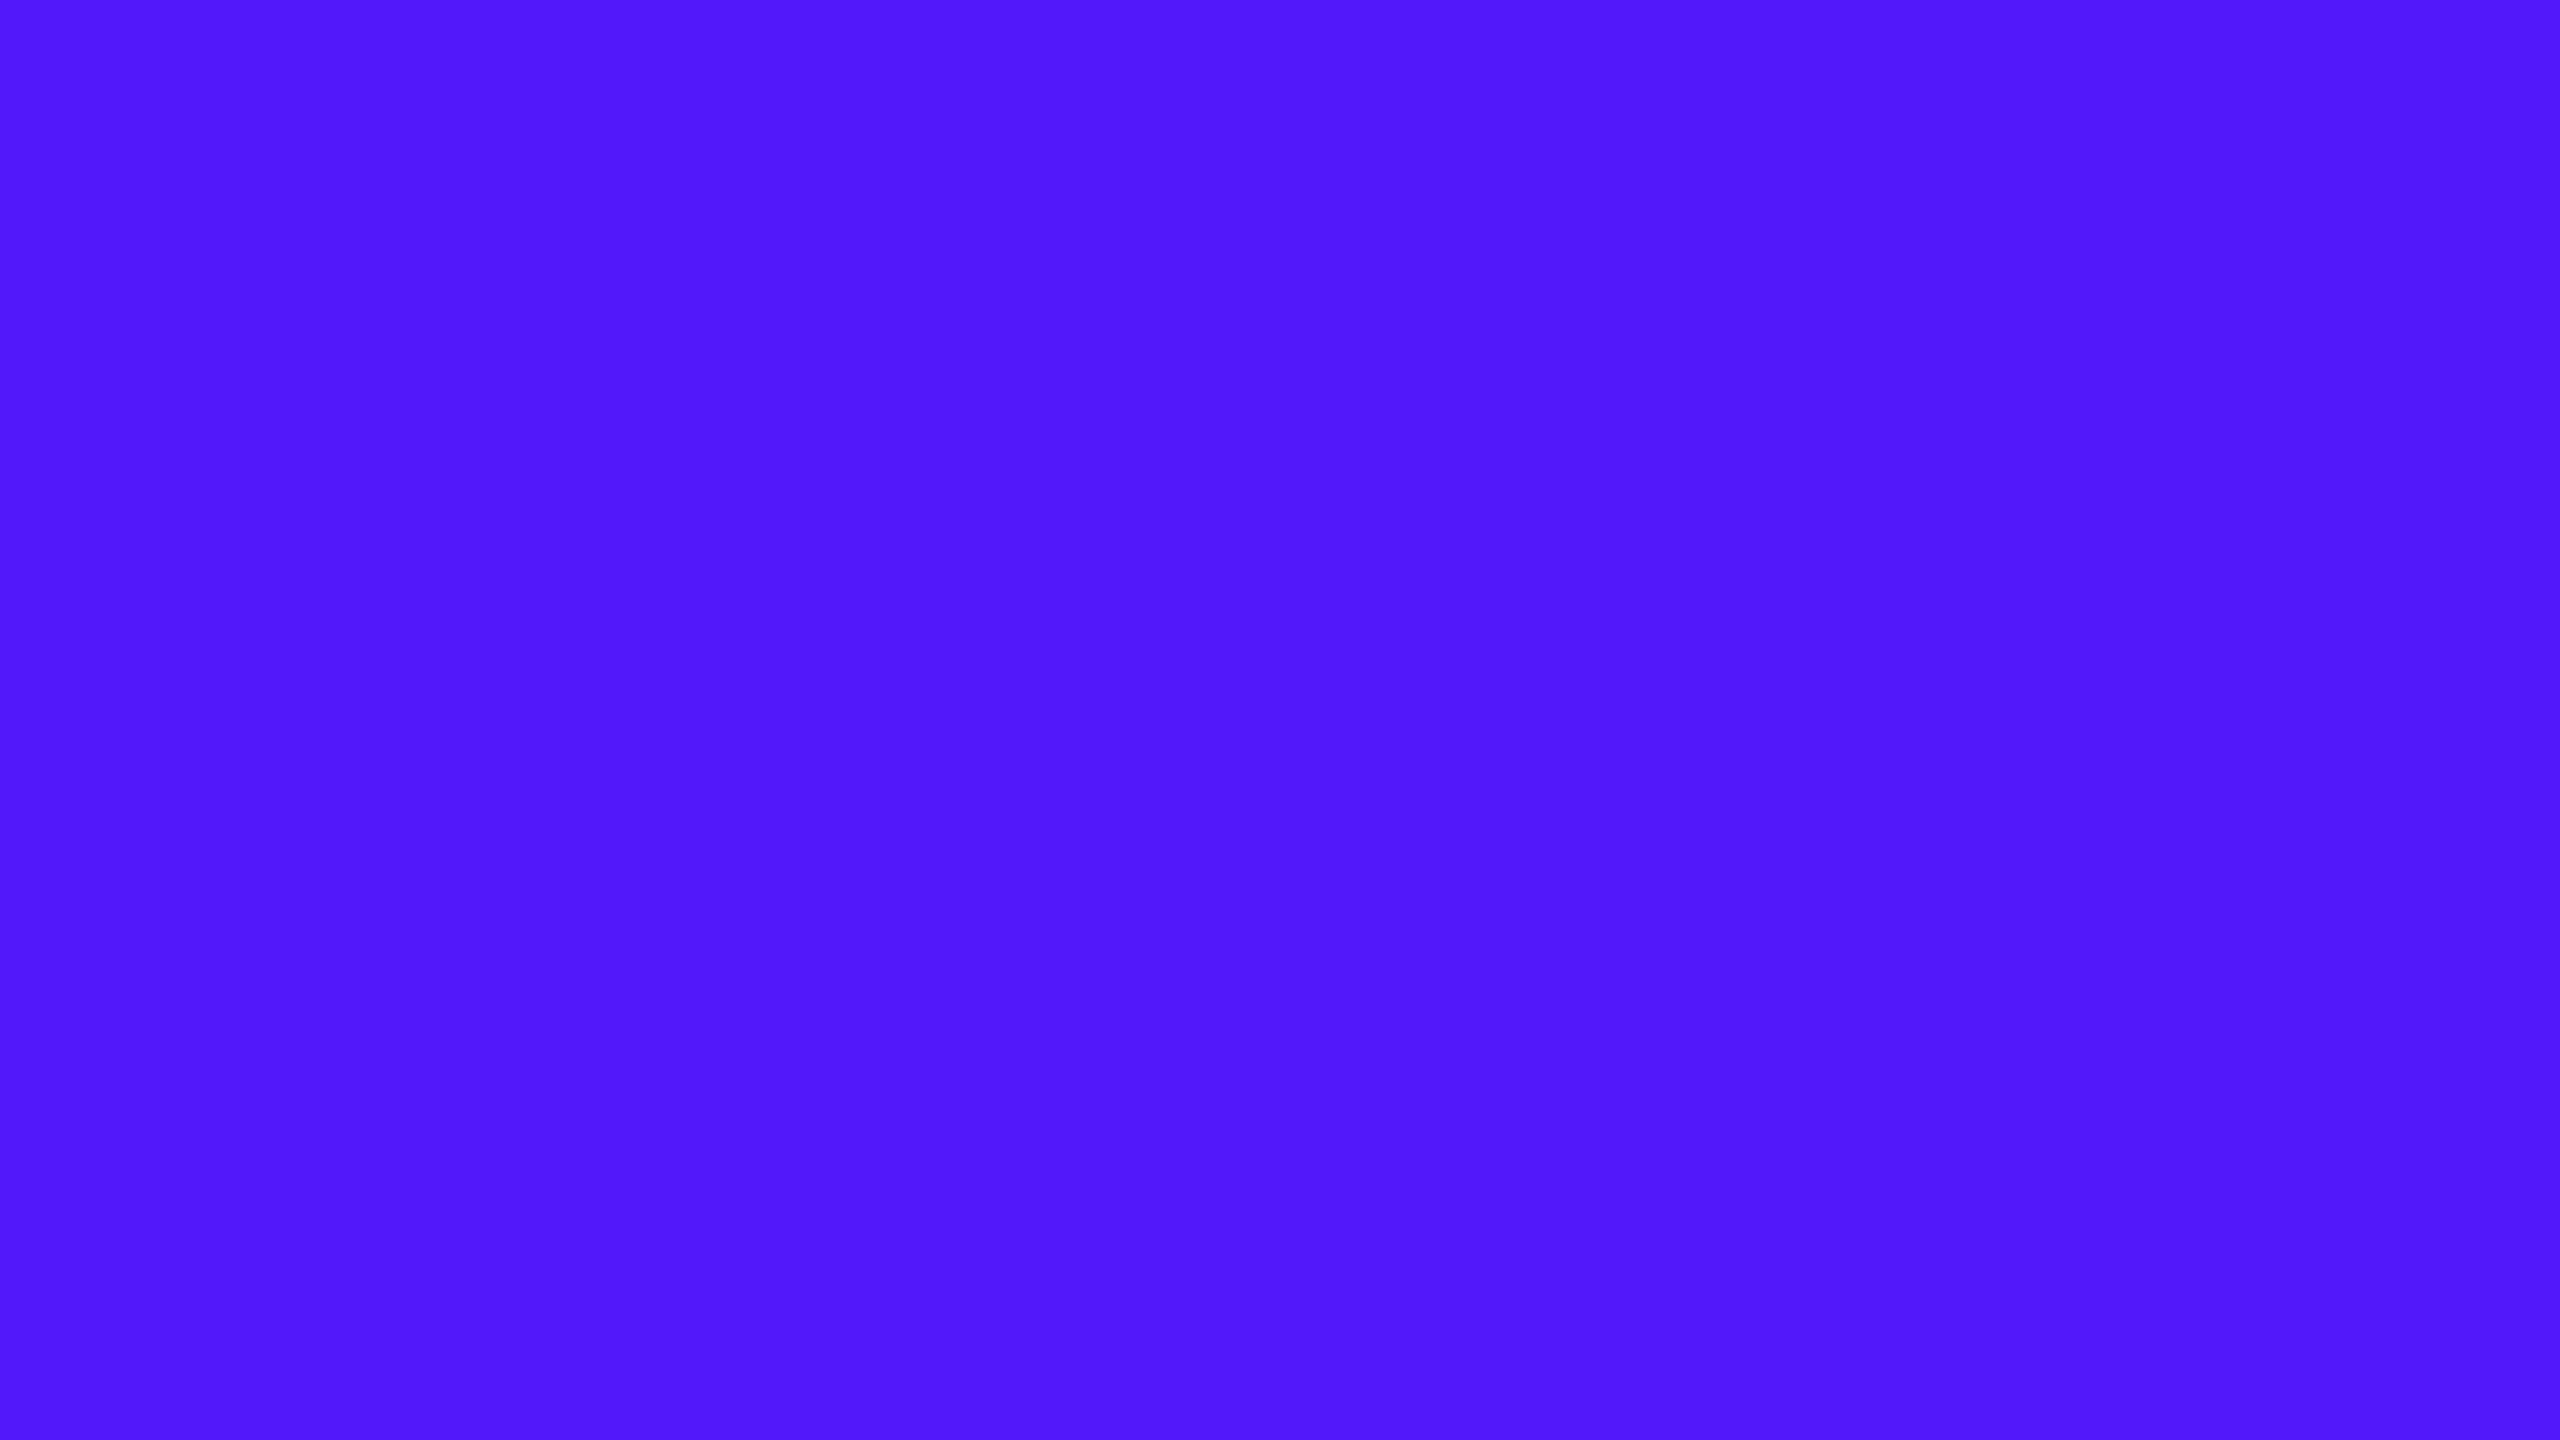 2560x1440 han purple solid color background